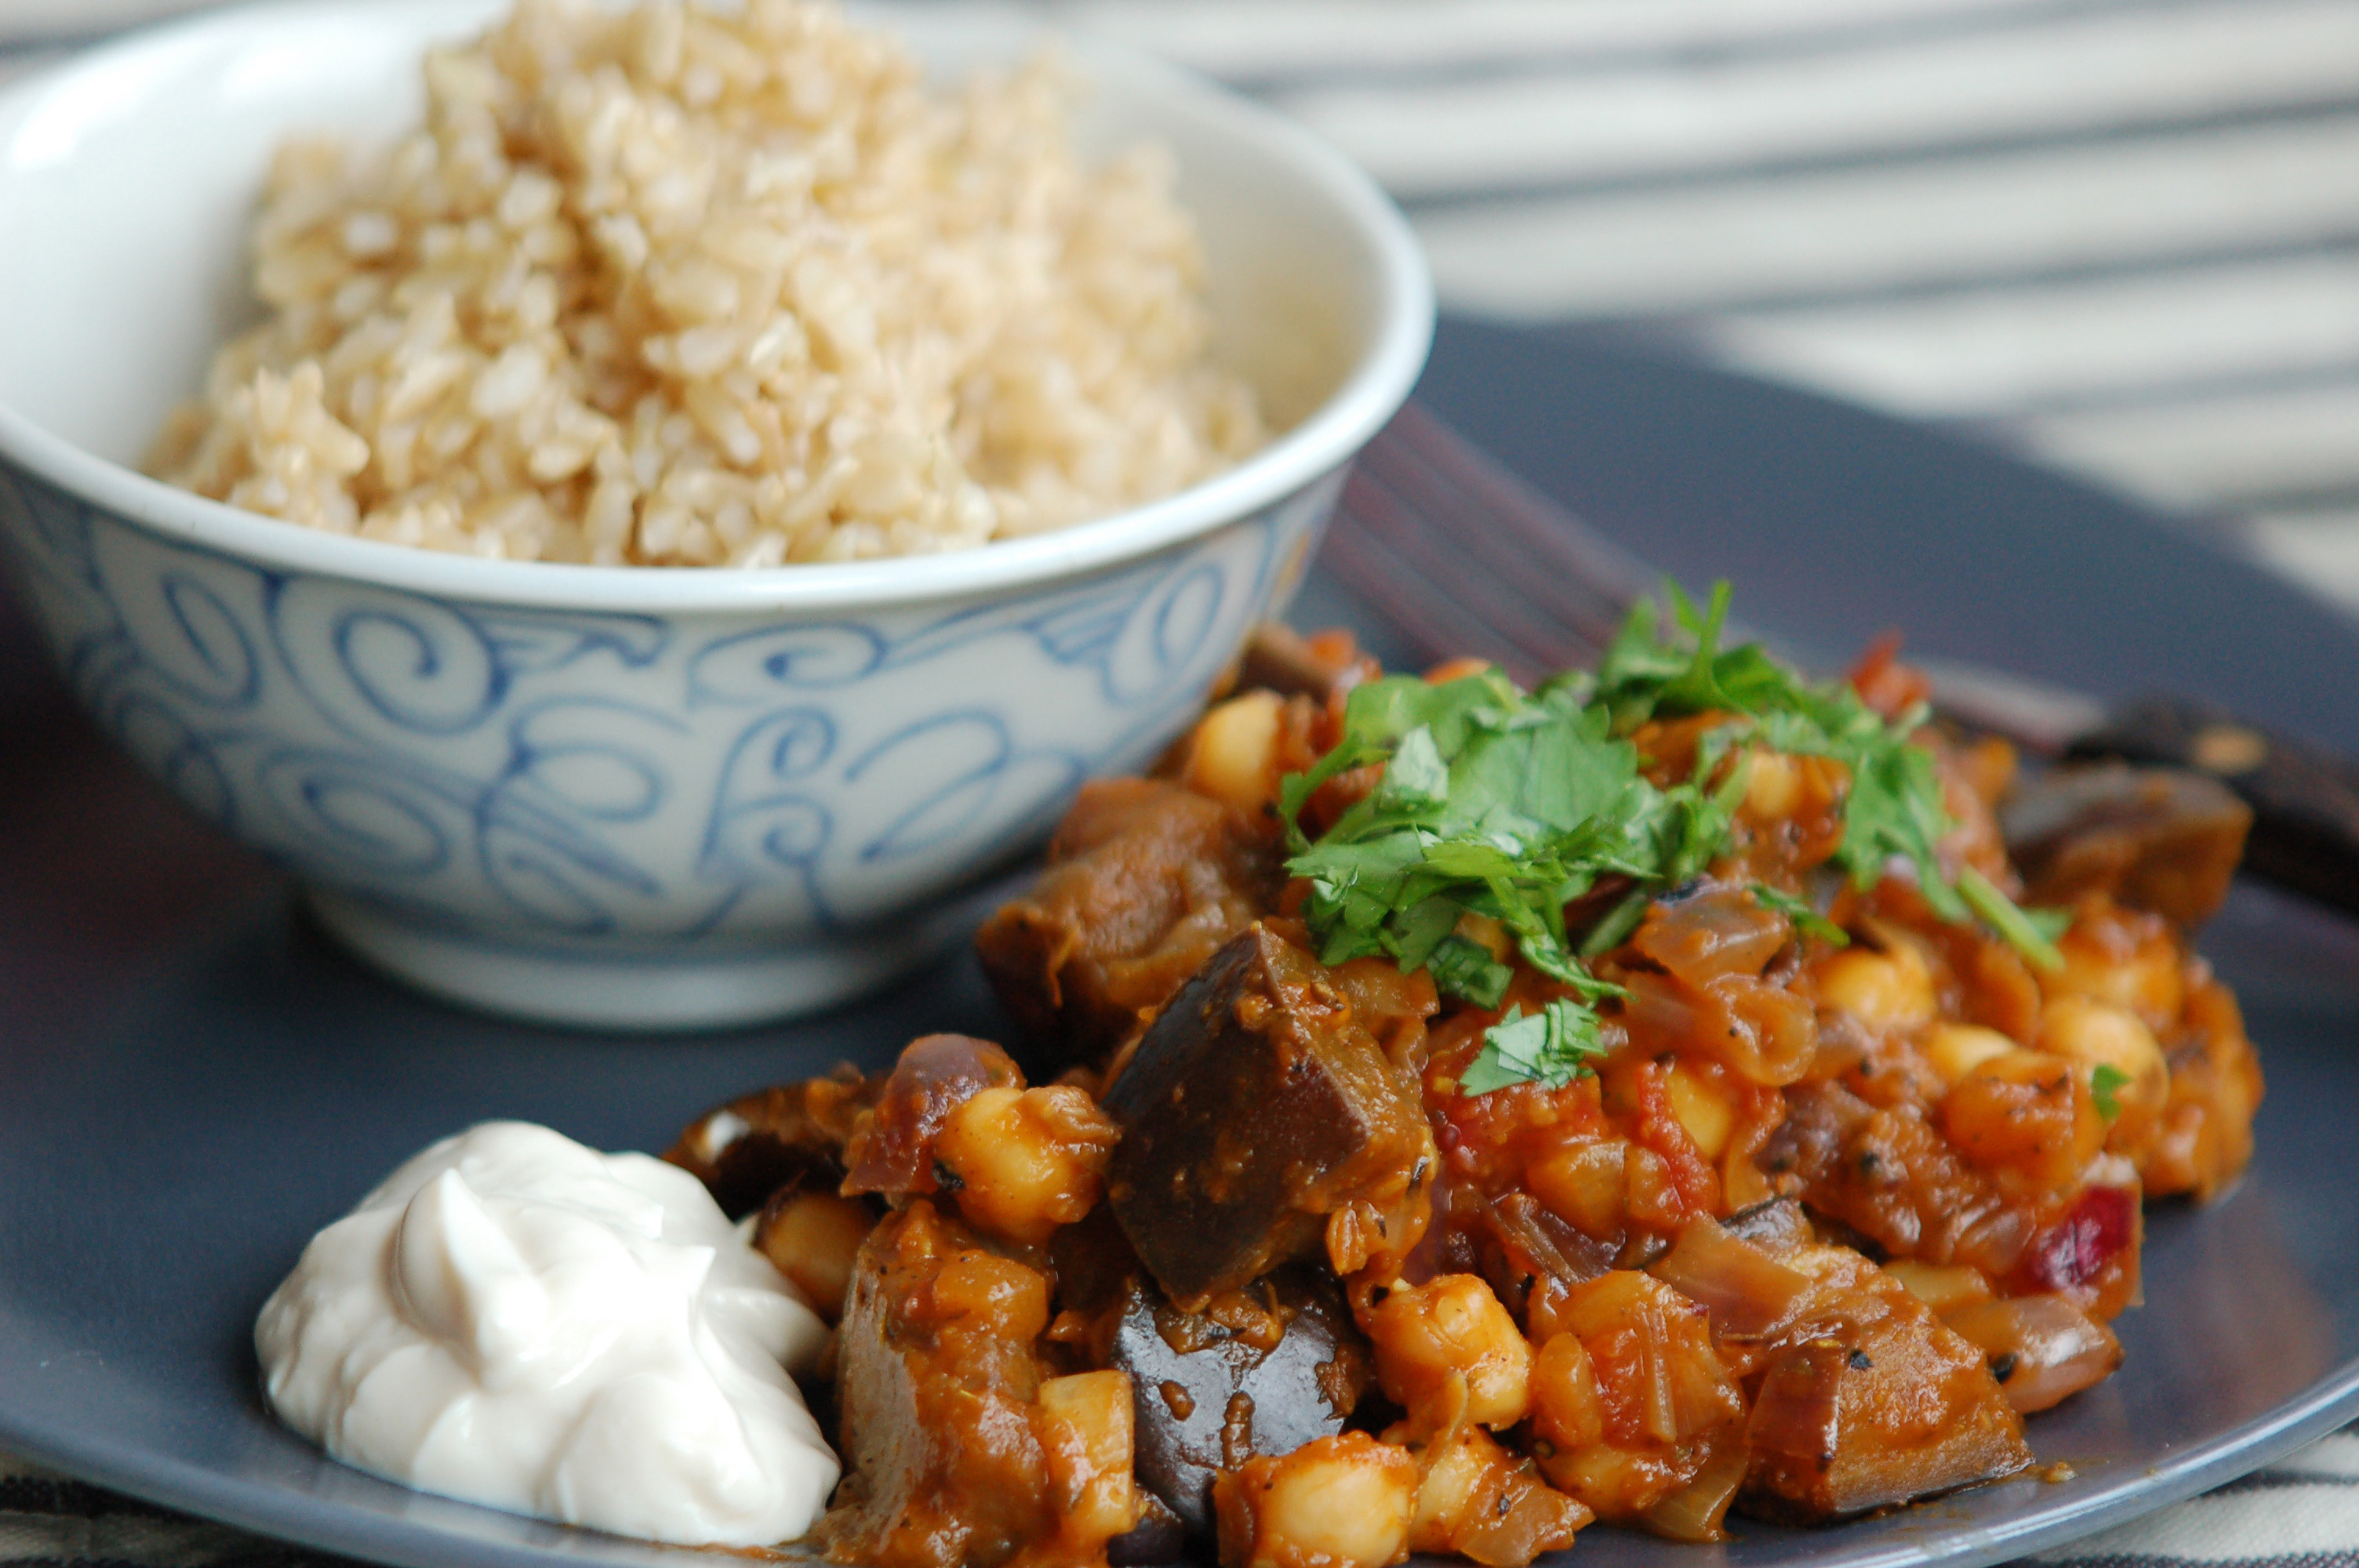 Aubergine chickpea curry